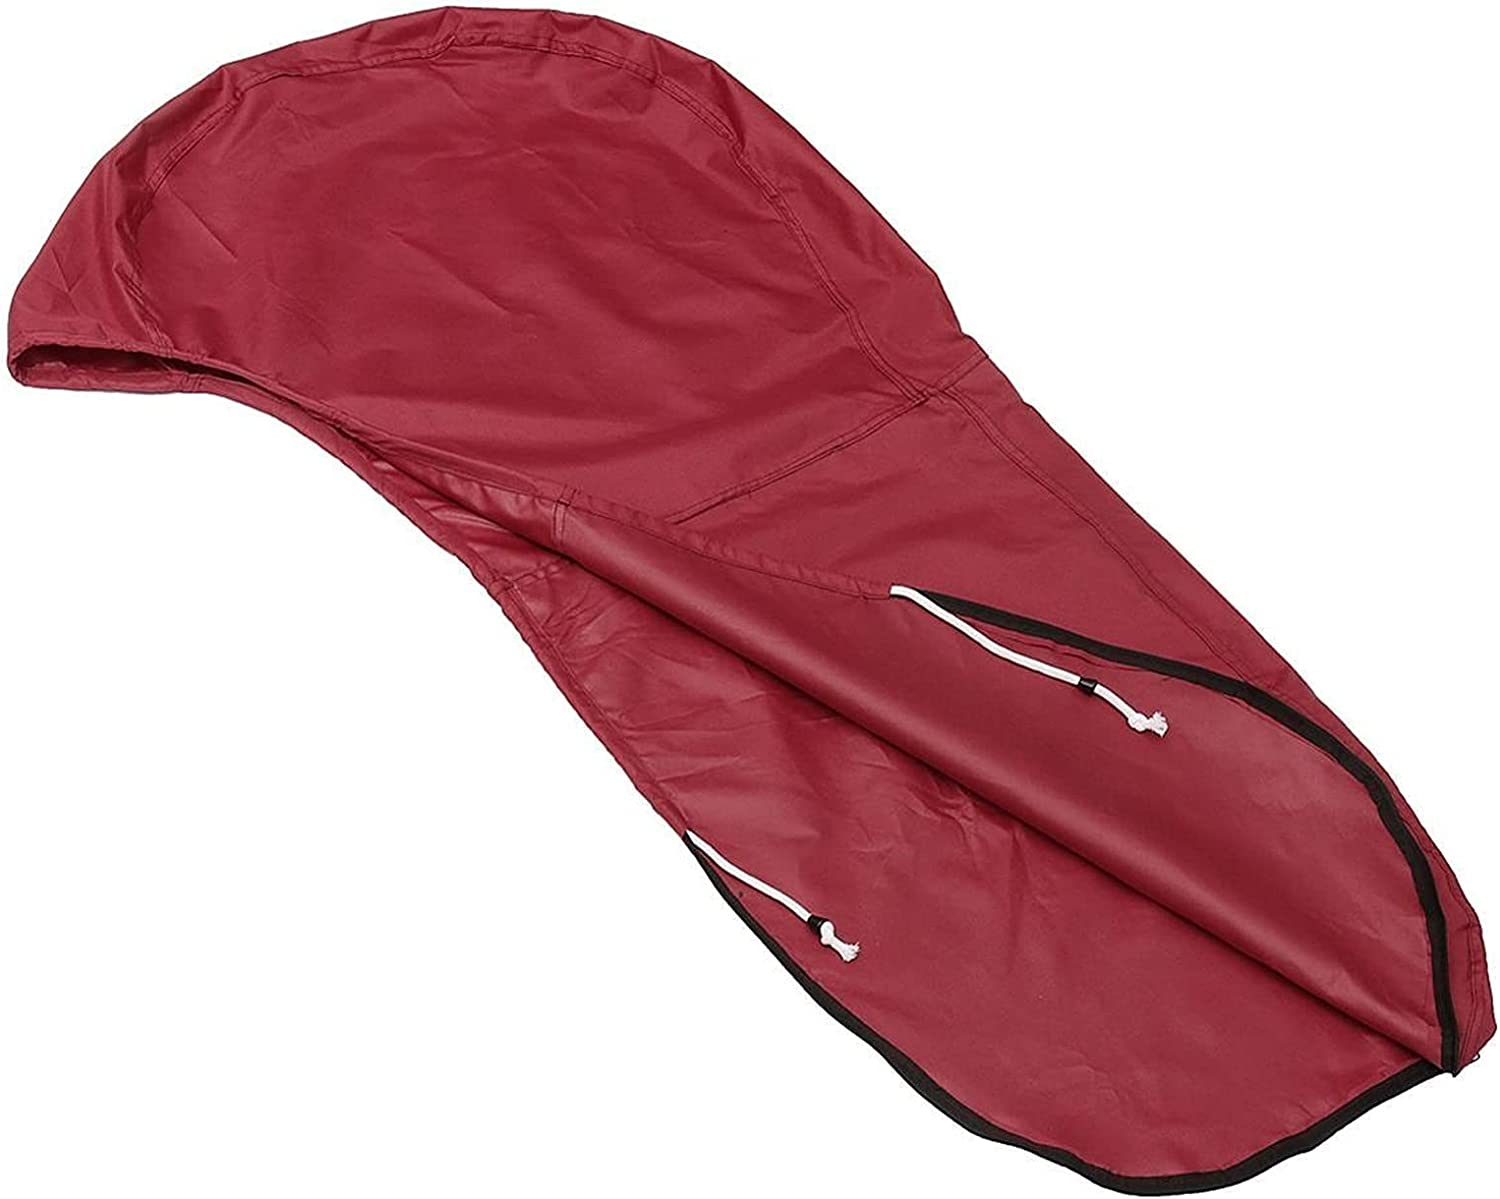 BYOLPMKK Waterproof Boat Cover In stock Max 56% OFF 6-225HP Cove Outboard Engine Full